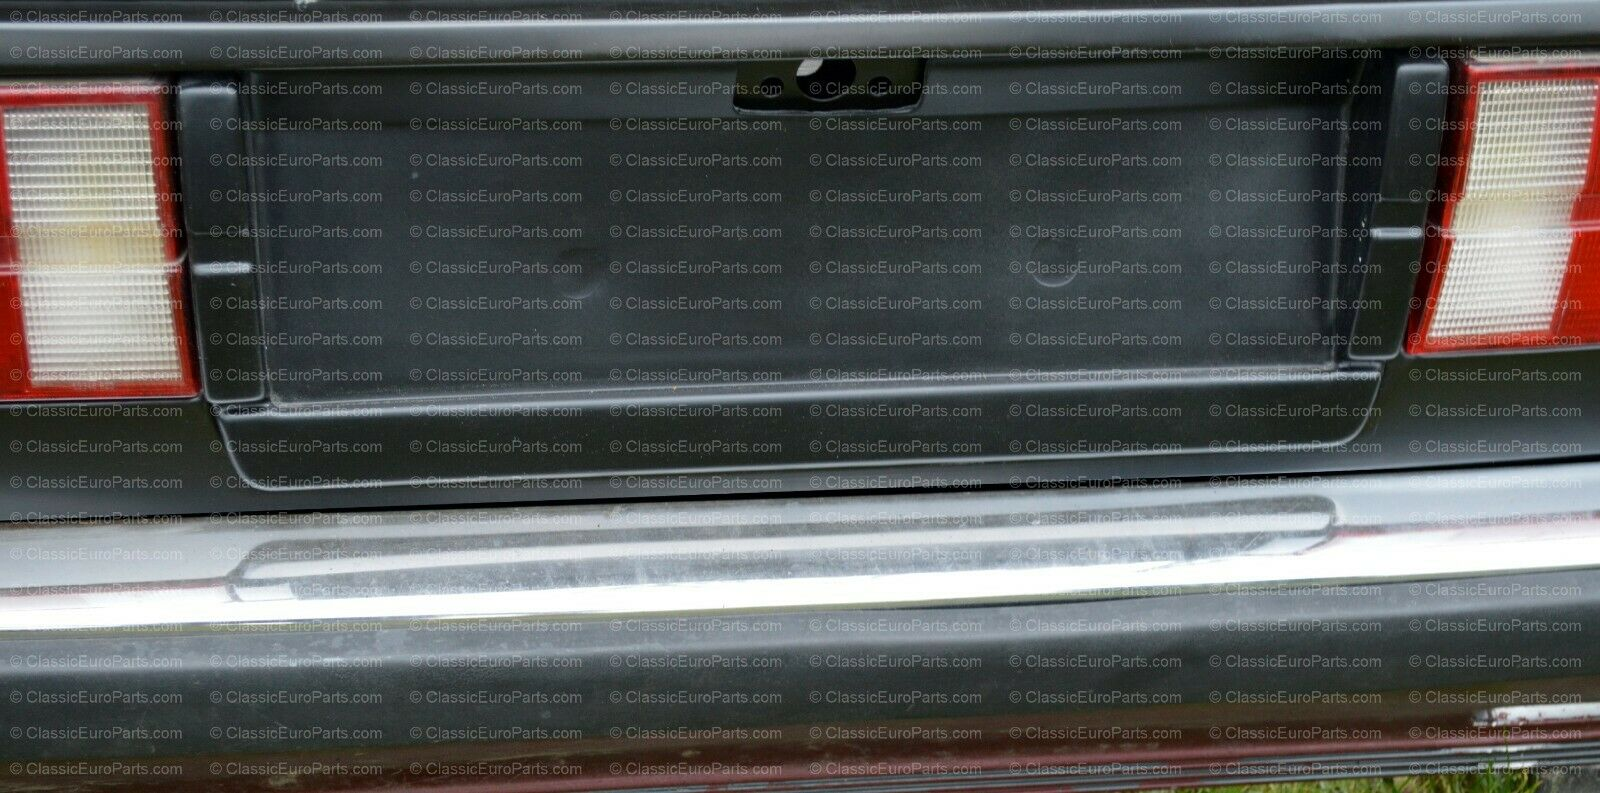 Euro plate filler / heckbende with taillight extensions for early model E30